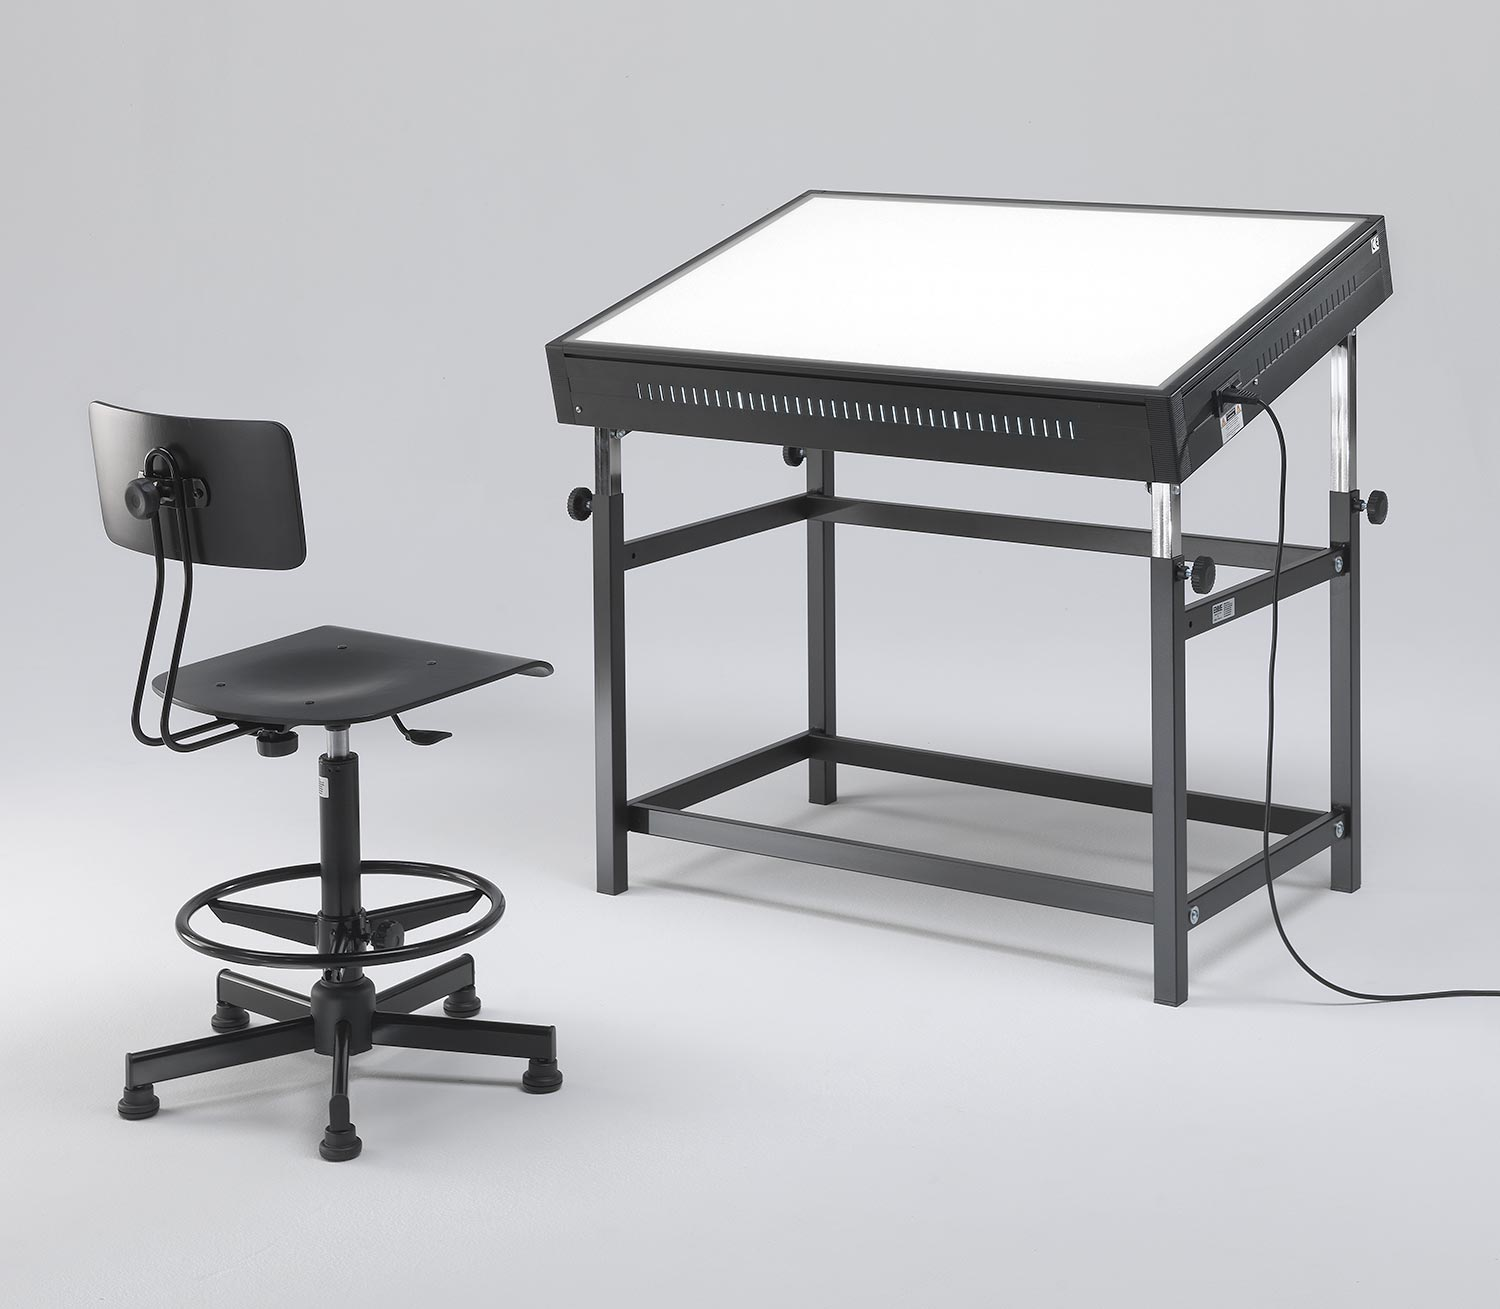 Drafting Table Design Light Tables And Light Boxes For Designer And Architect